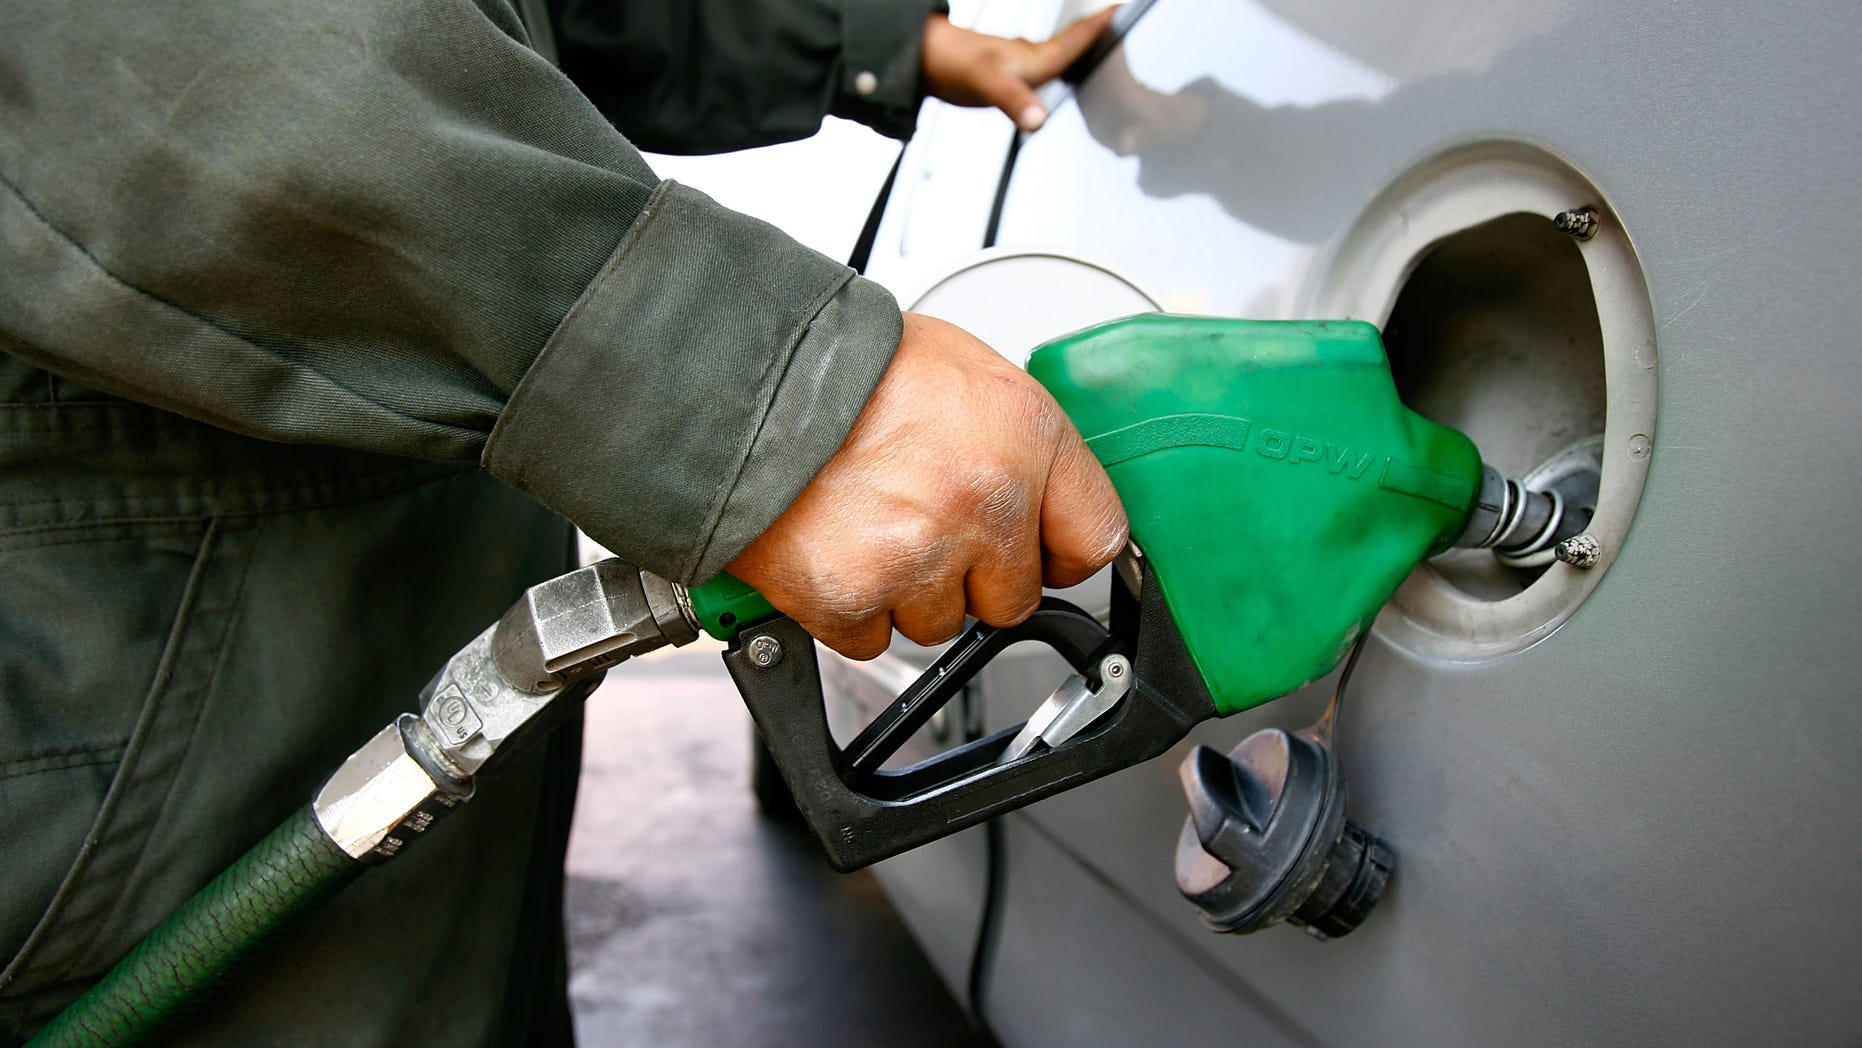 TIJUANA, MEXICO - JUNE 27:  A Pemex gas station attendant fills a car registered with a California license plate on June 27, 2008 in Tijuana, Mexico. With the cost of gasoline in California around $4.60 per gallon, many drivers are buying their fuel in Mexico for about $3.20. There is a price to pay for cheaper gas though. Mexican gas is formulated with more sulfur than California gas and that can damage the emission control equipment on US cars, causing them to fail emissions tests and leading to expensive repairs. In addition, unless a driver has other business in Mexico, part of their fuel savings will be burned up idling in a line that can easily last for hours to get back into the US.  (Photo by David McNew/Getty Images)